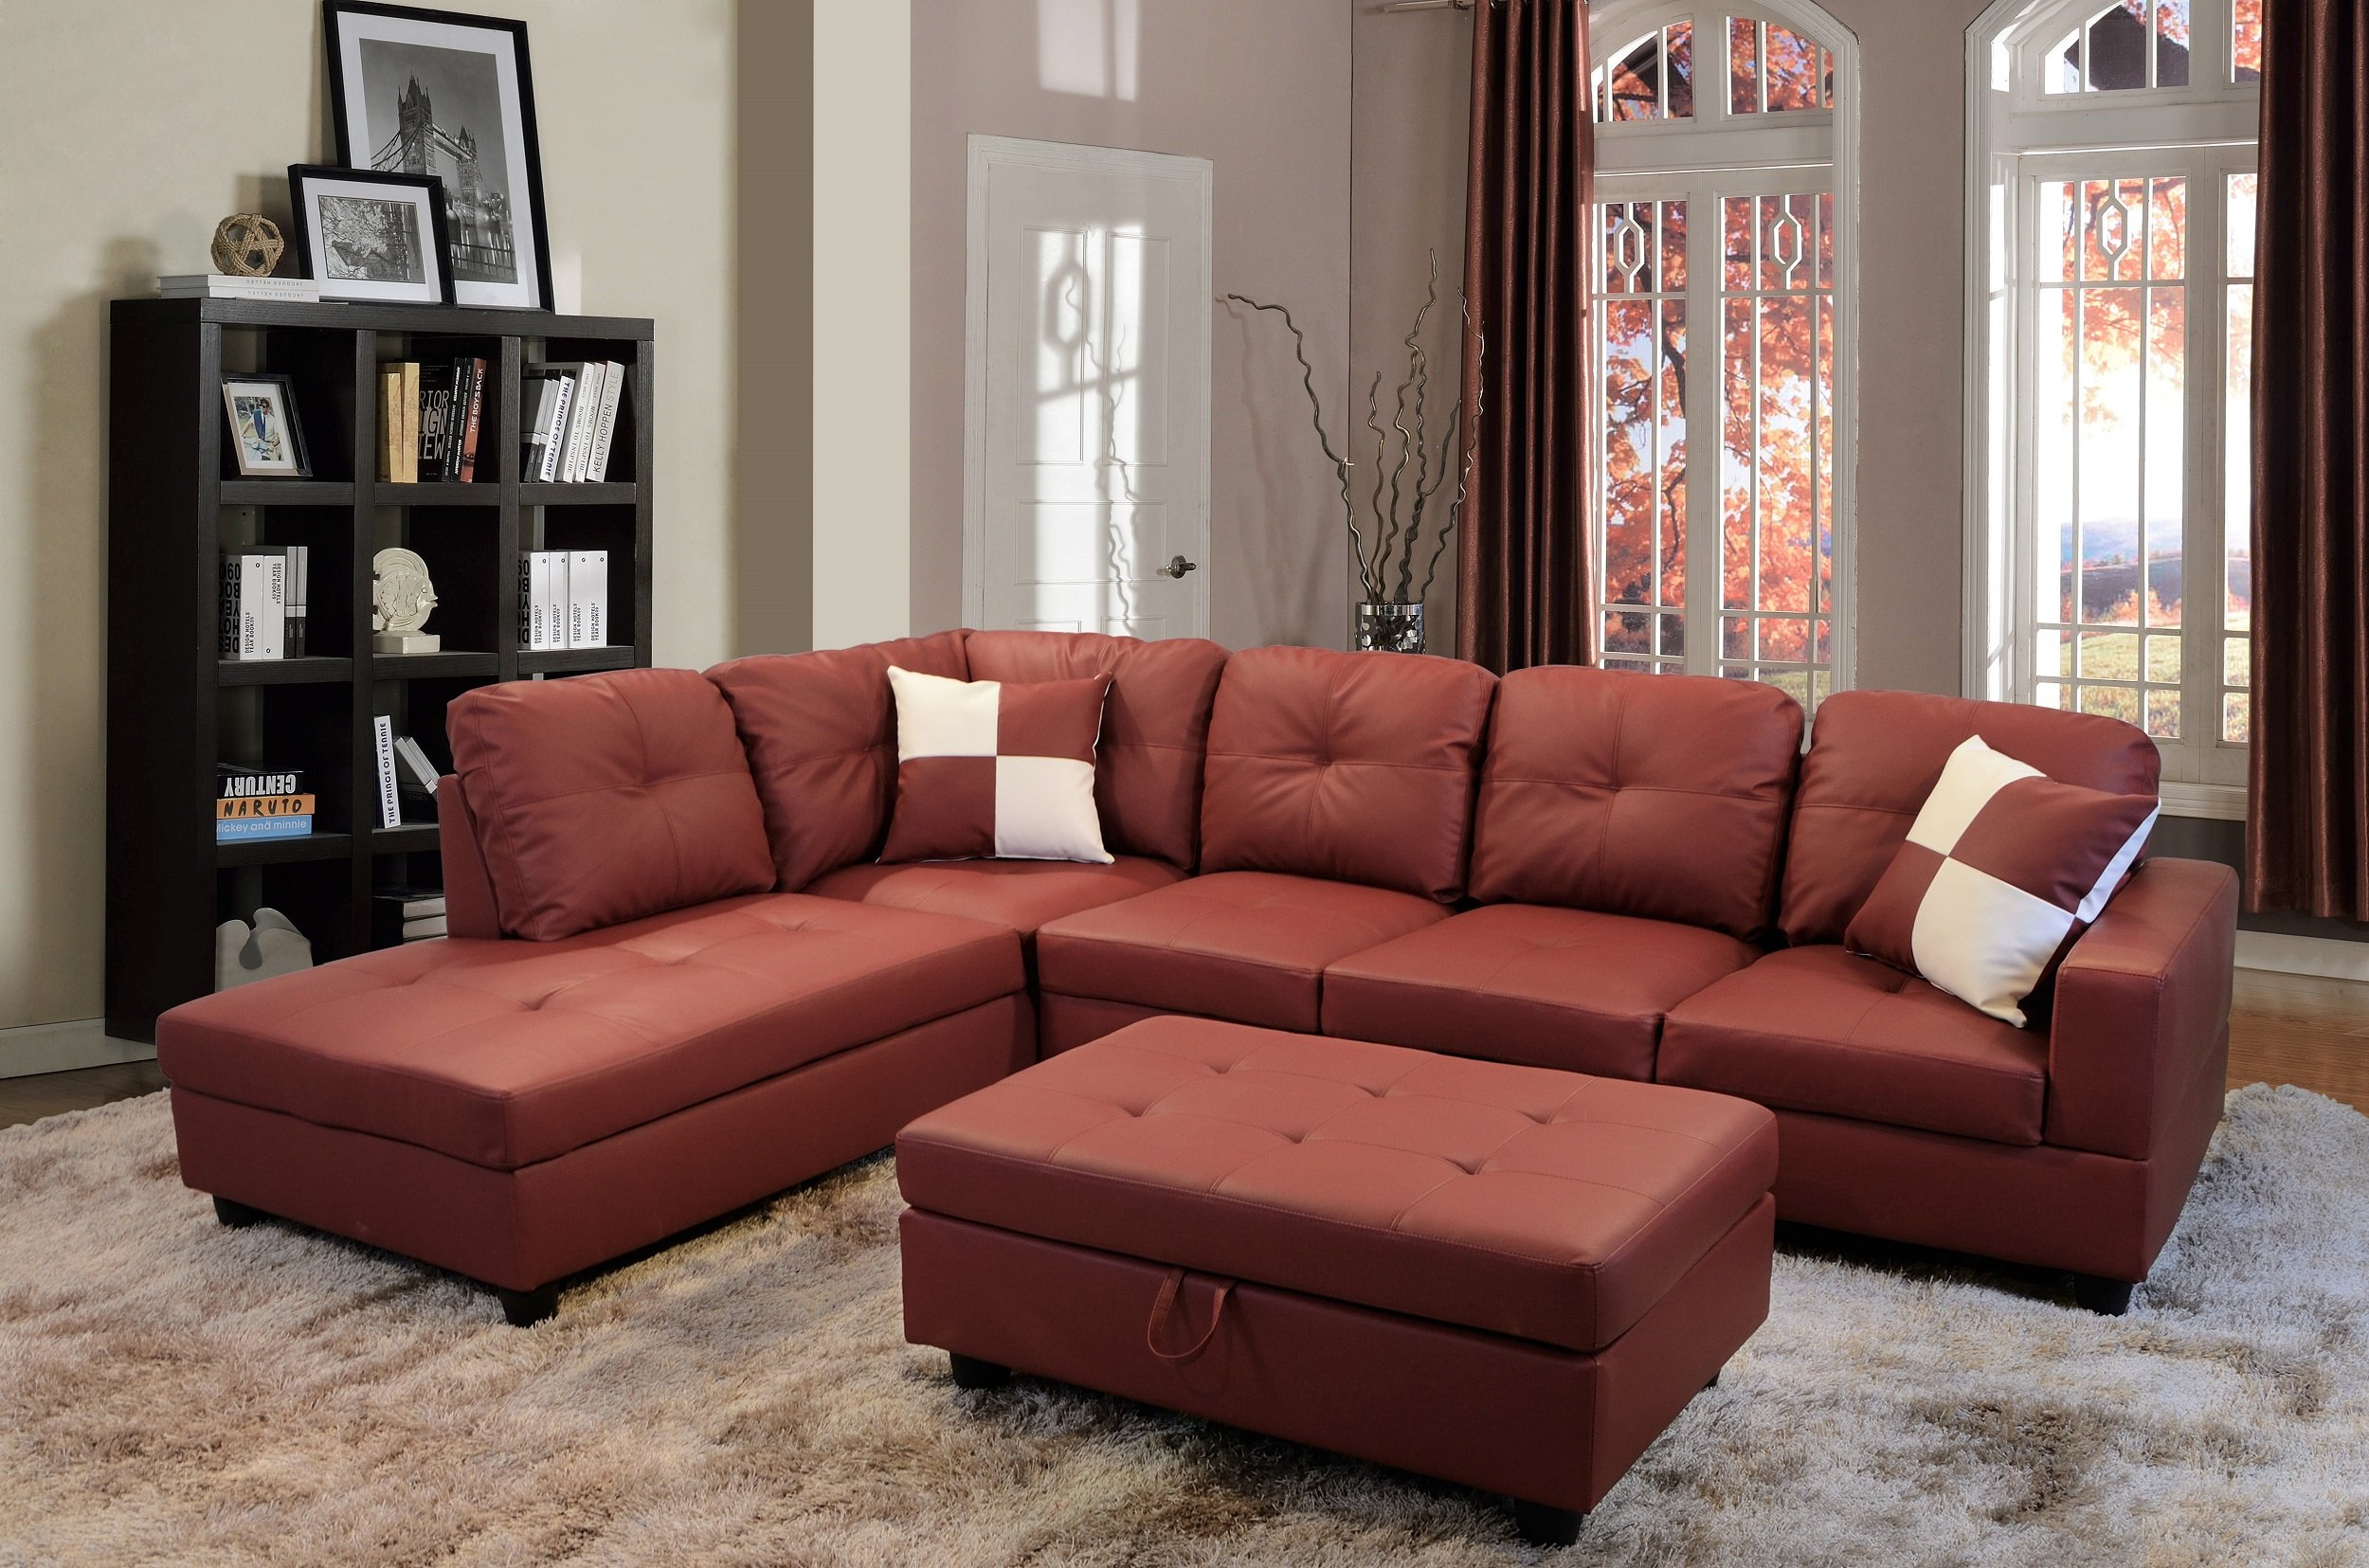 Details about Golden Coast Furniture Sectional Sofa Set (Burgundy,Left  Facing)